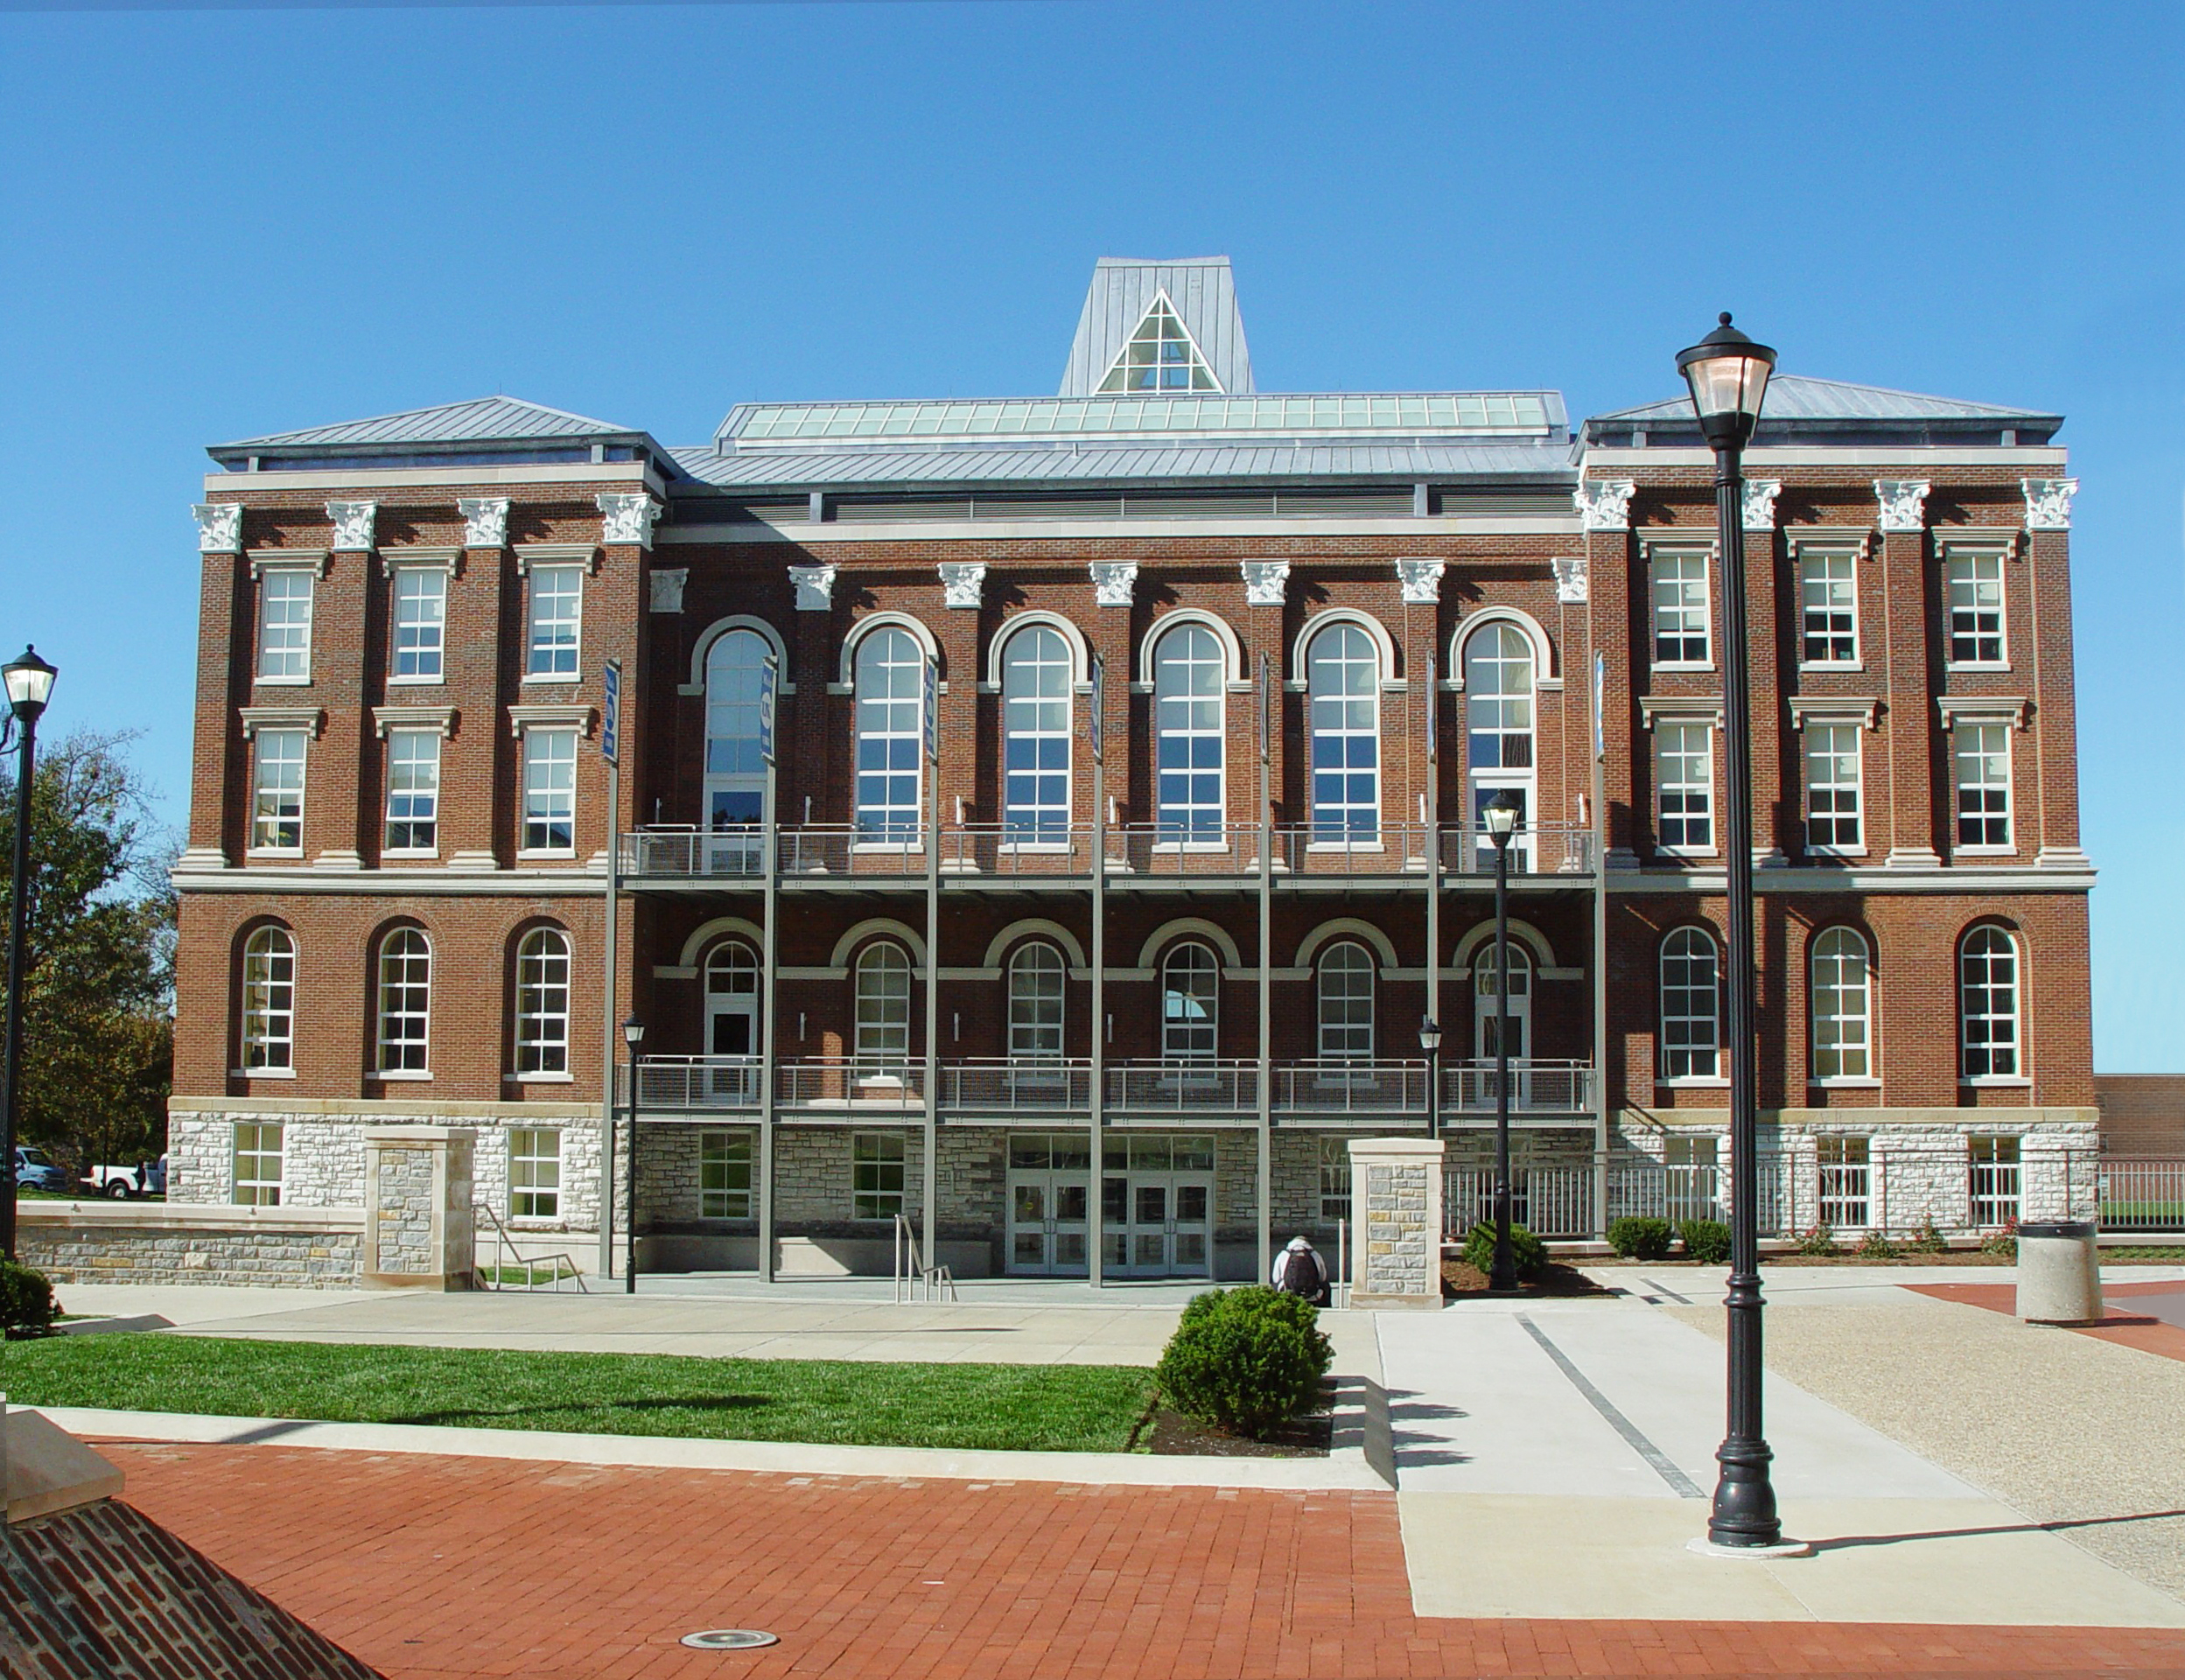 University of Kentucky Administration Building